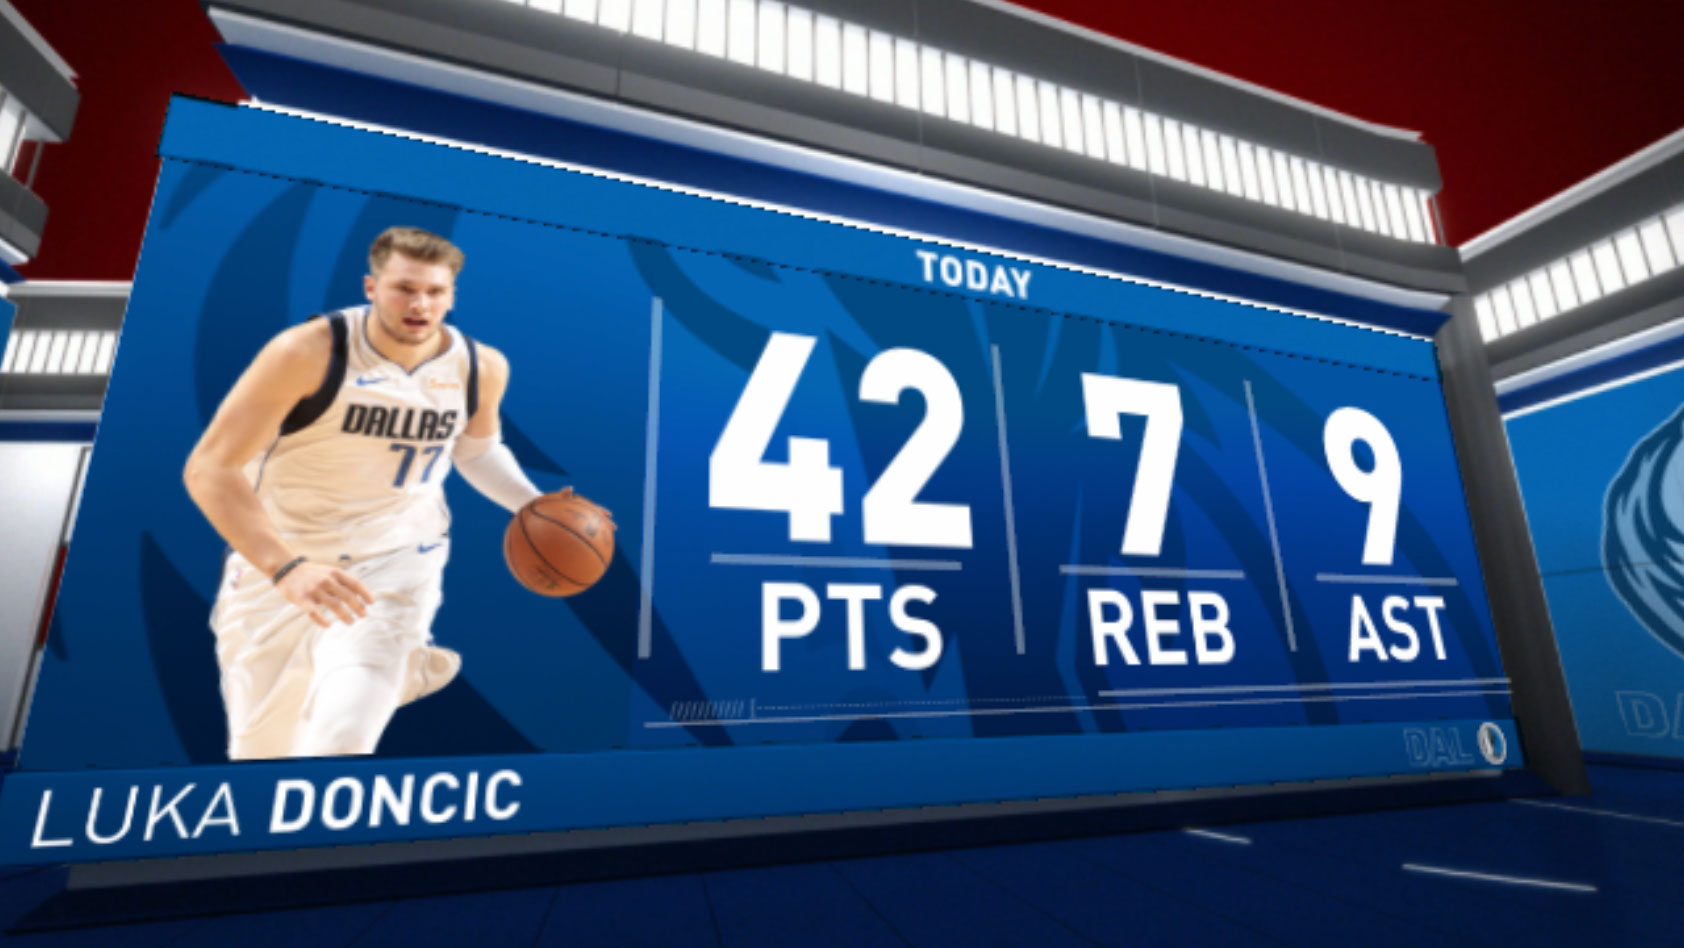 Luka Doncic S 42 Point Game 1 Sets New Nba Playoff Debut Record Nba Com